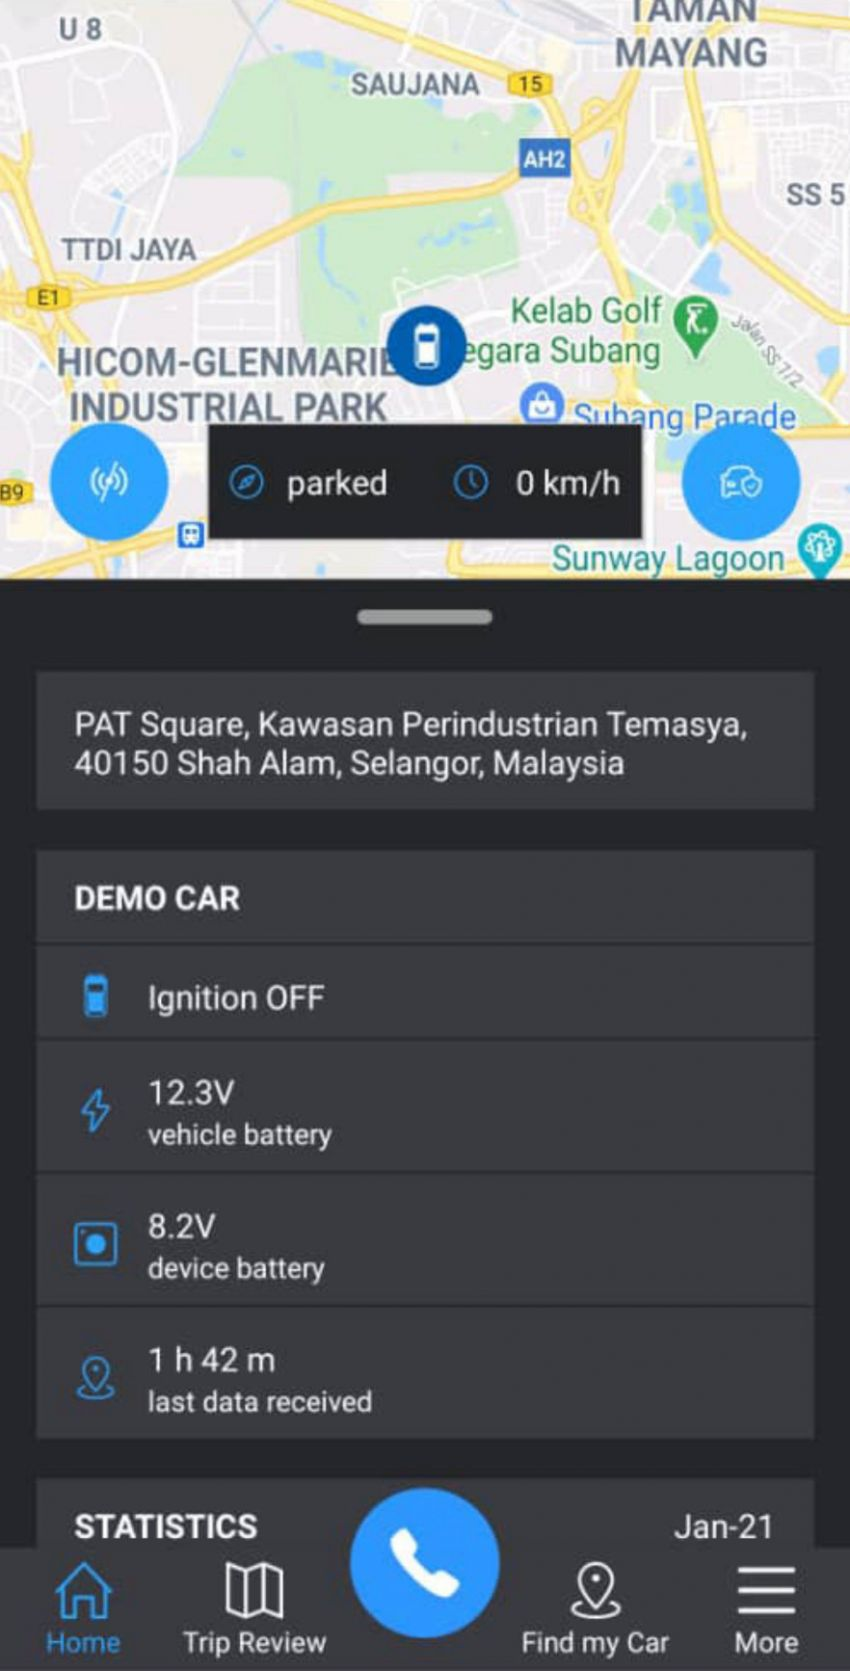 Subaru Connex telematics system launched for XV and Forester in Malaysia – RM1,900; retrofit available Image #1337051